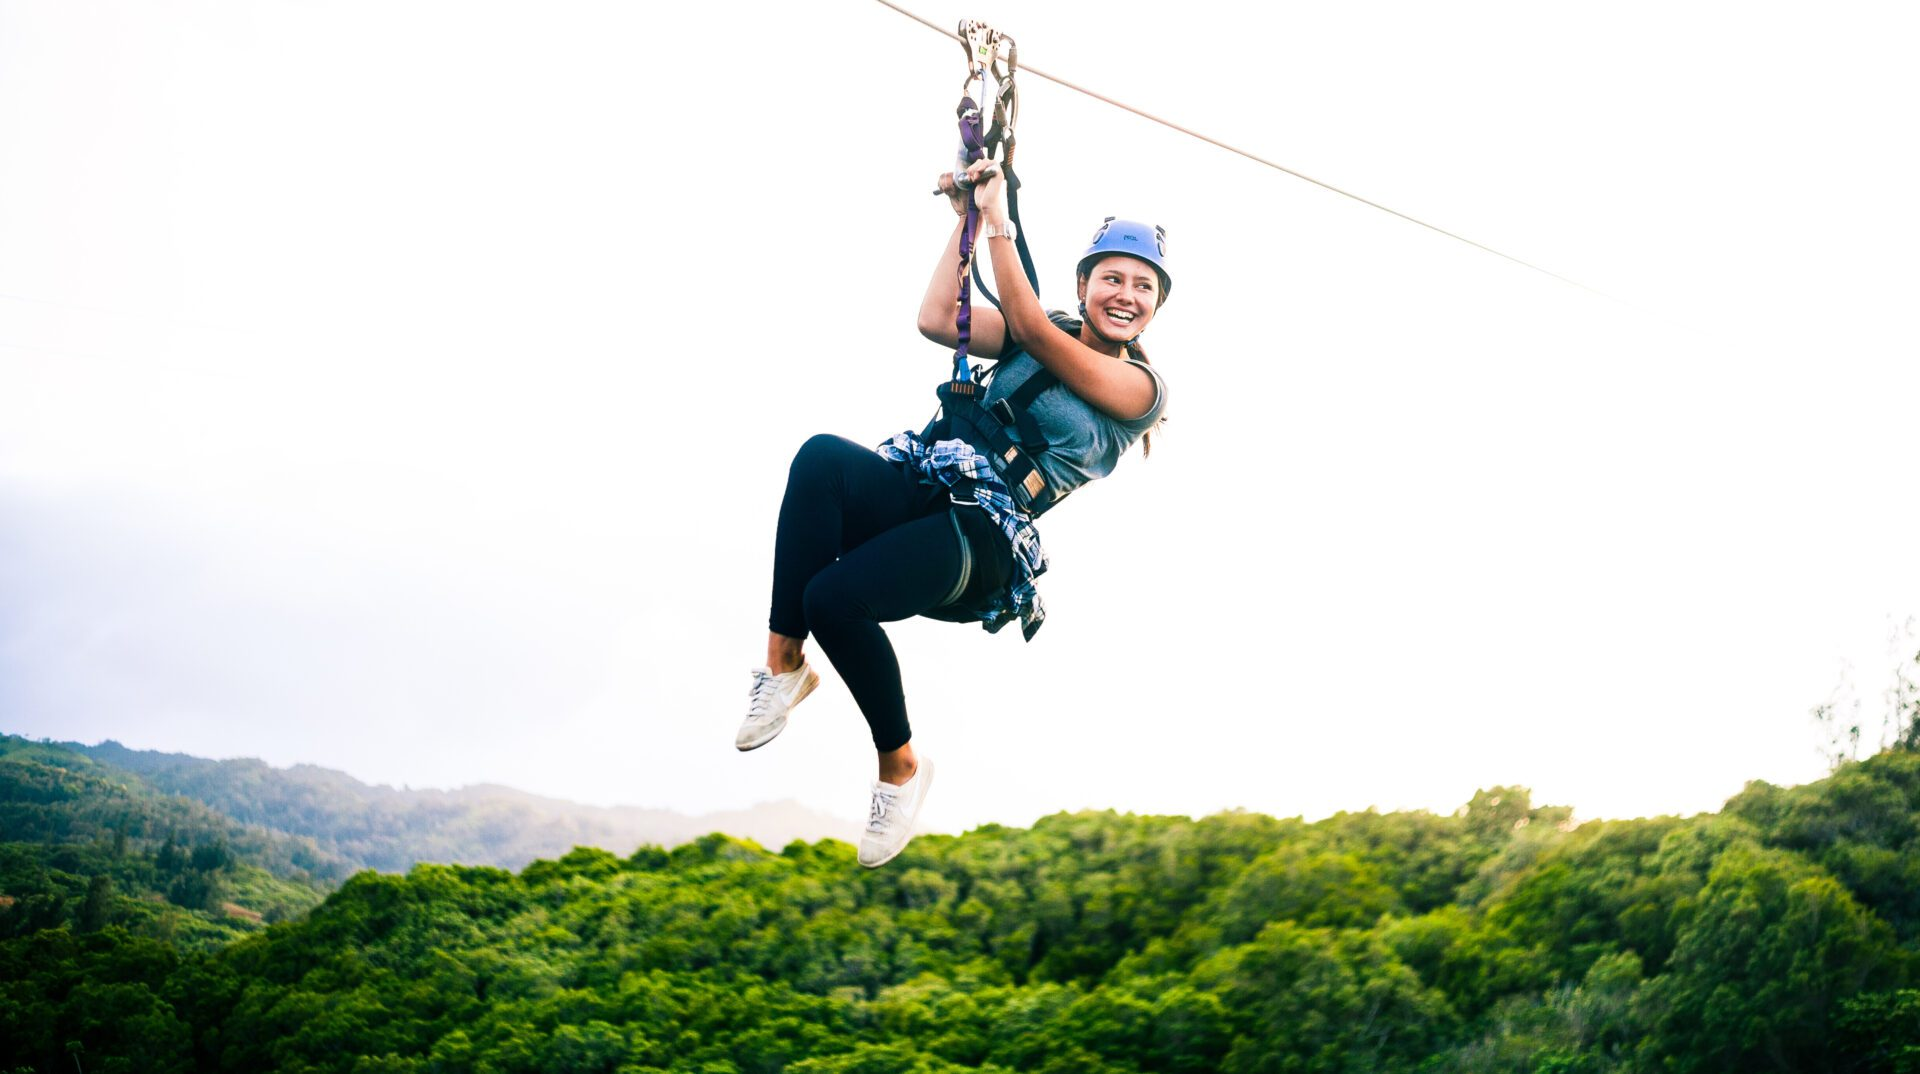 5 Things You'll Experience When You Zipline in Hawaii with CLIMB Works